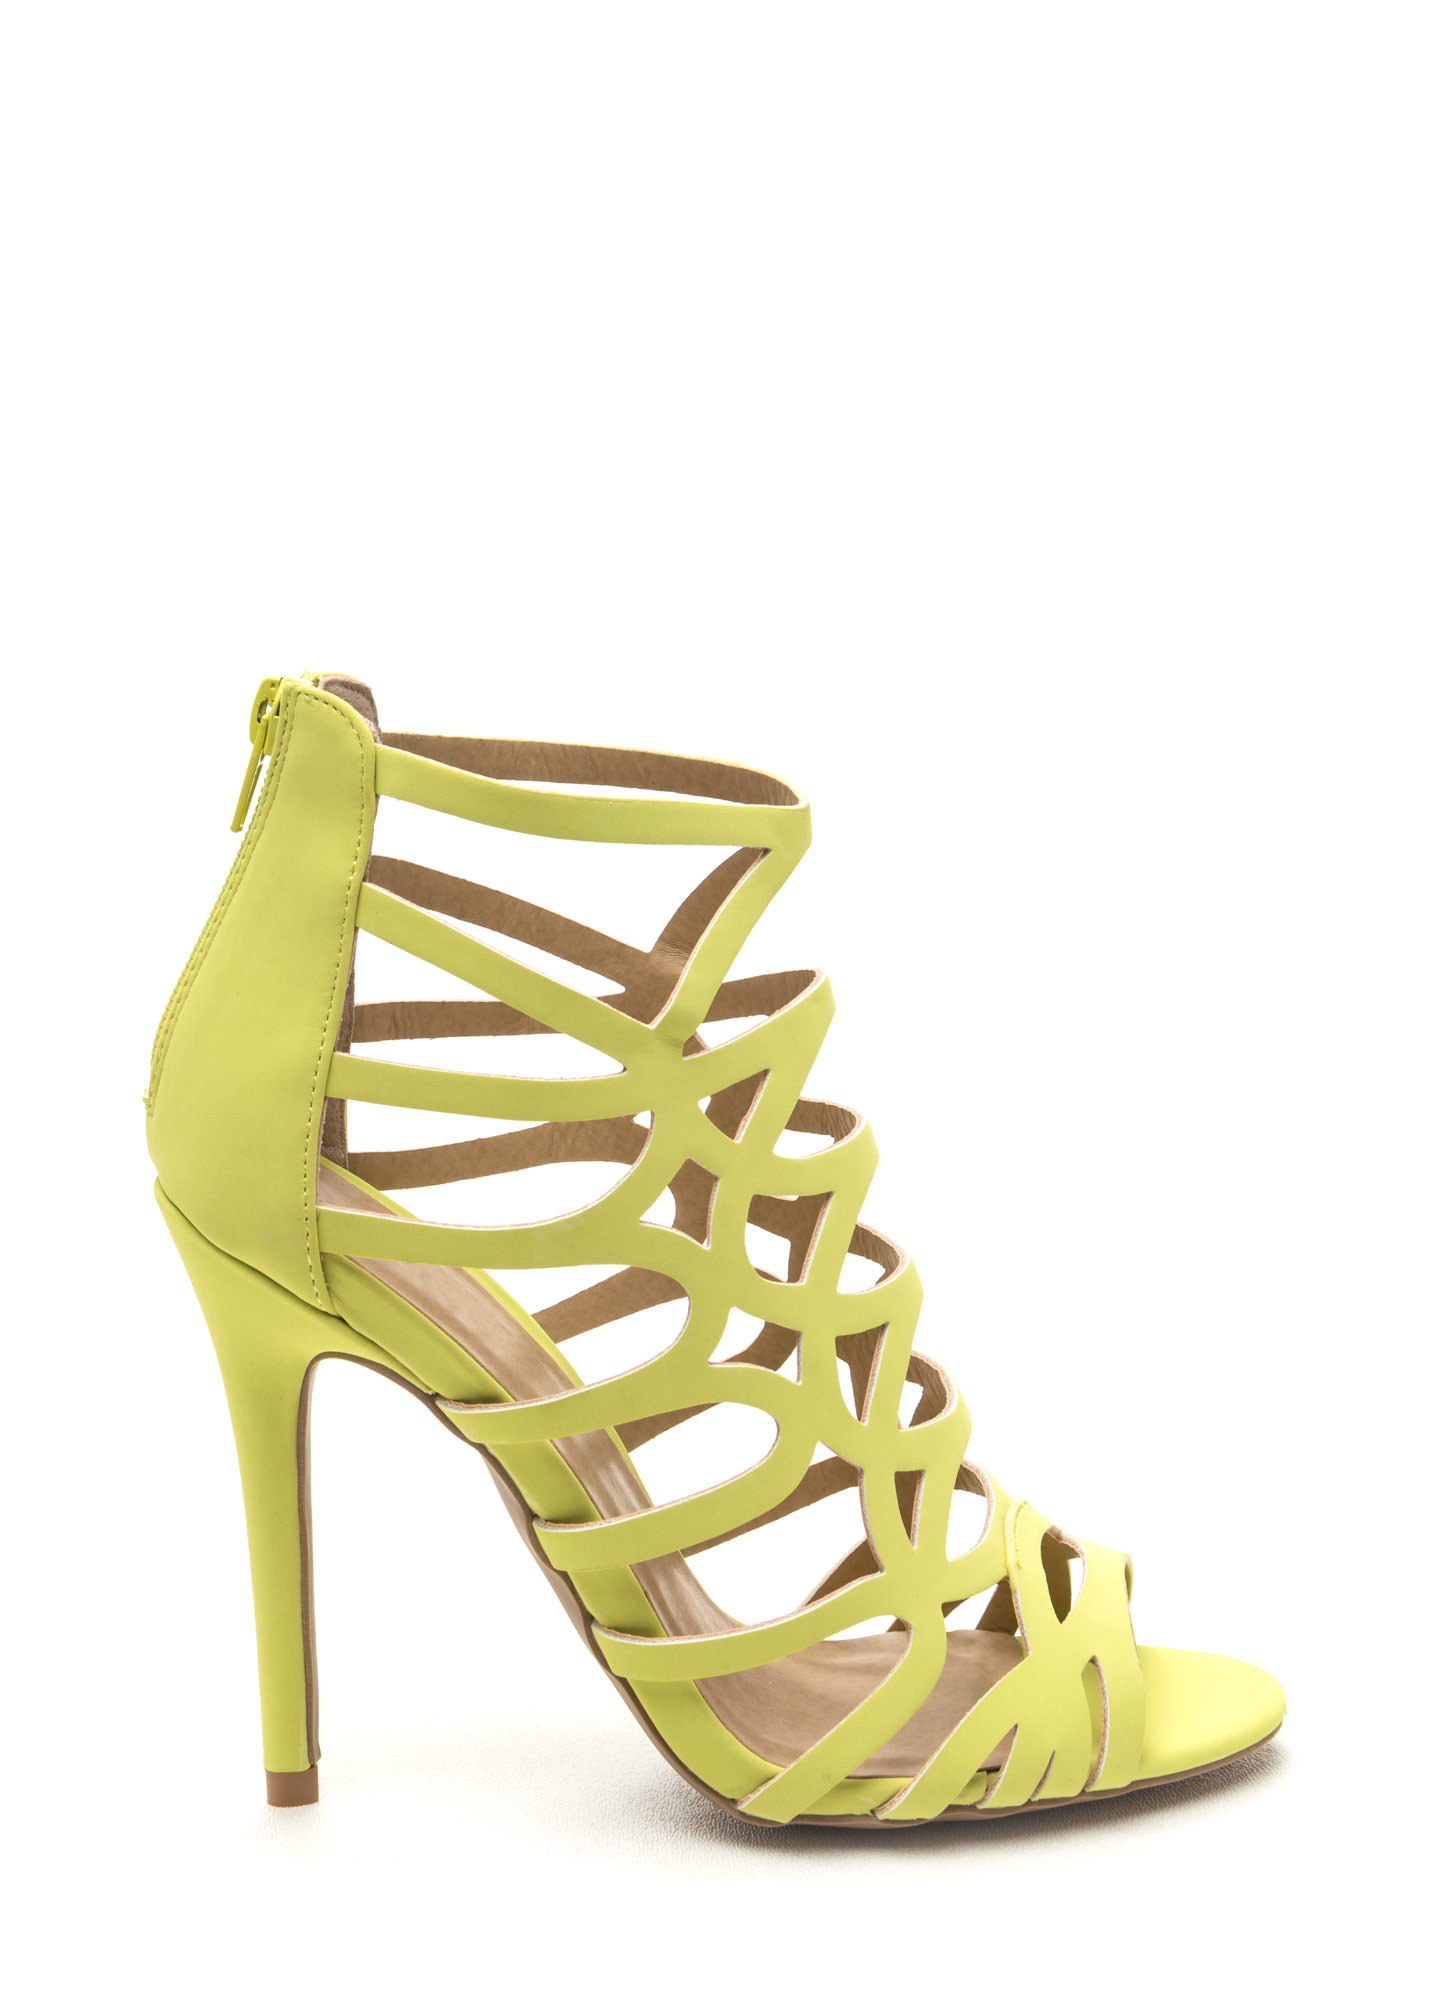 Low Heel Yellow Shoes